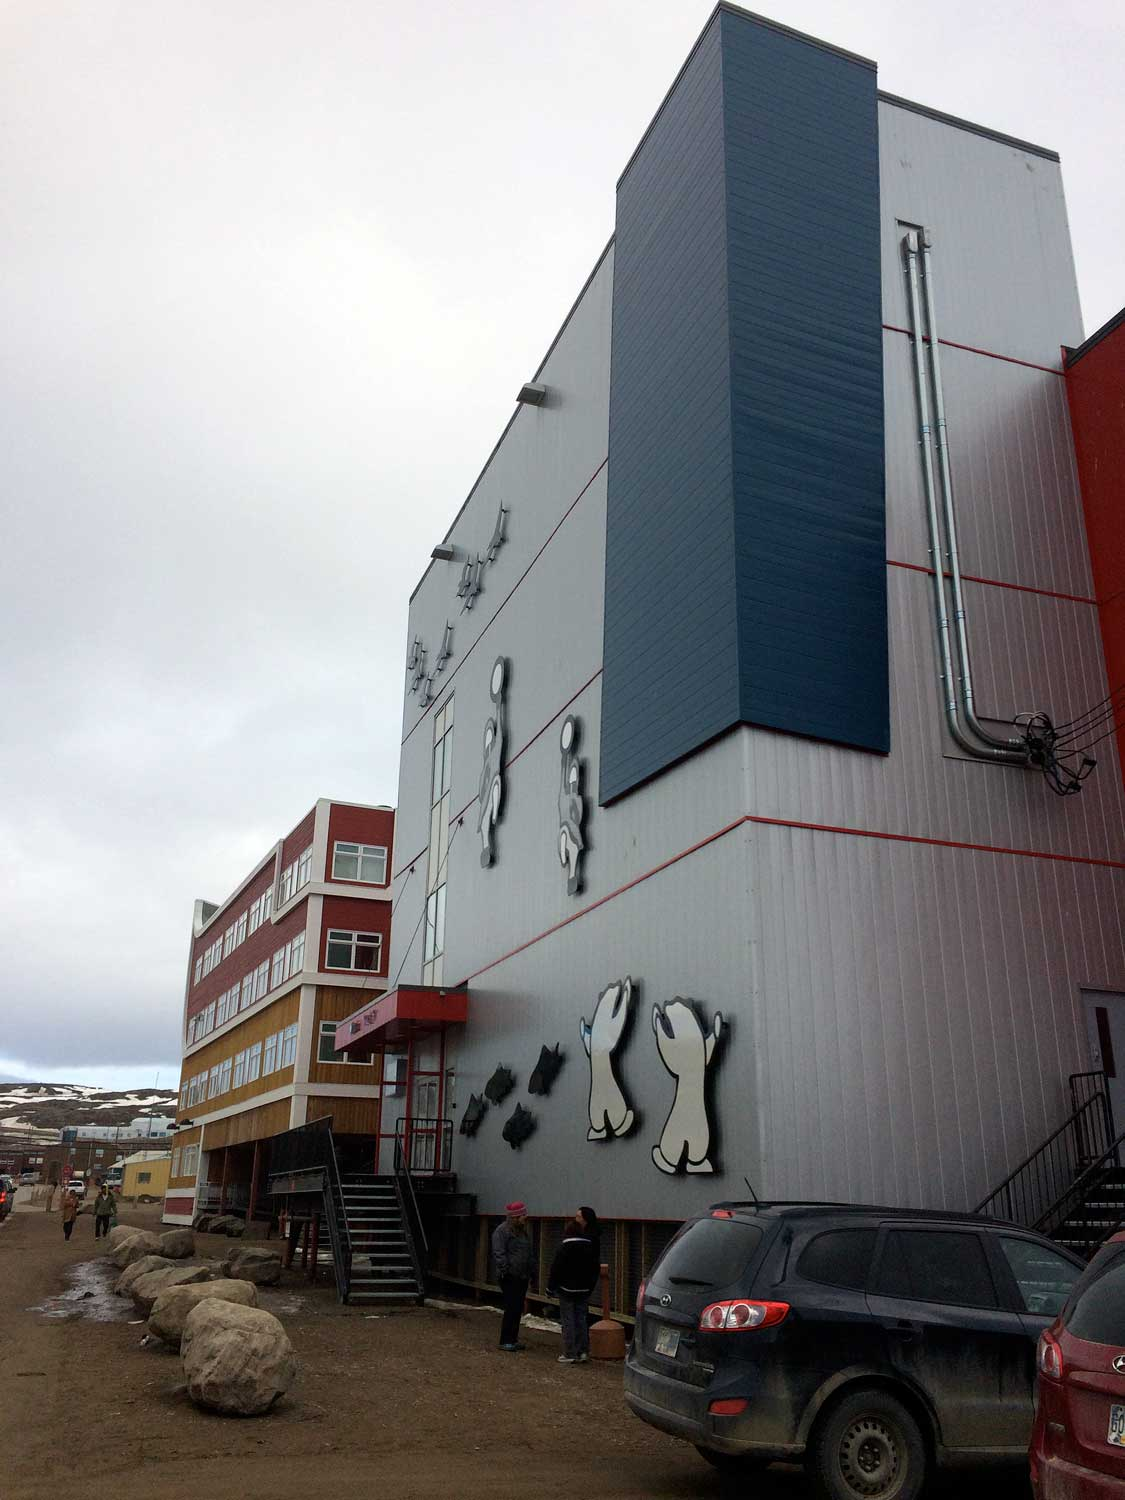 Polar on the exterior wall of new office building in Iqaluit, Nuanvut, Canada. Copyright Christine Montague 2014